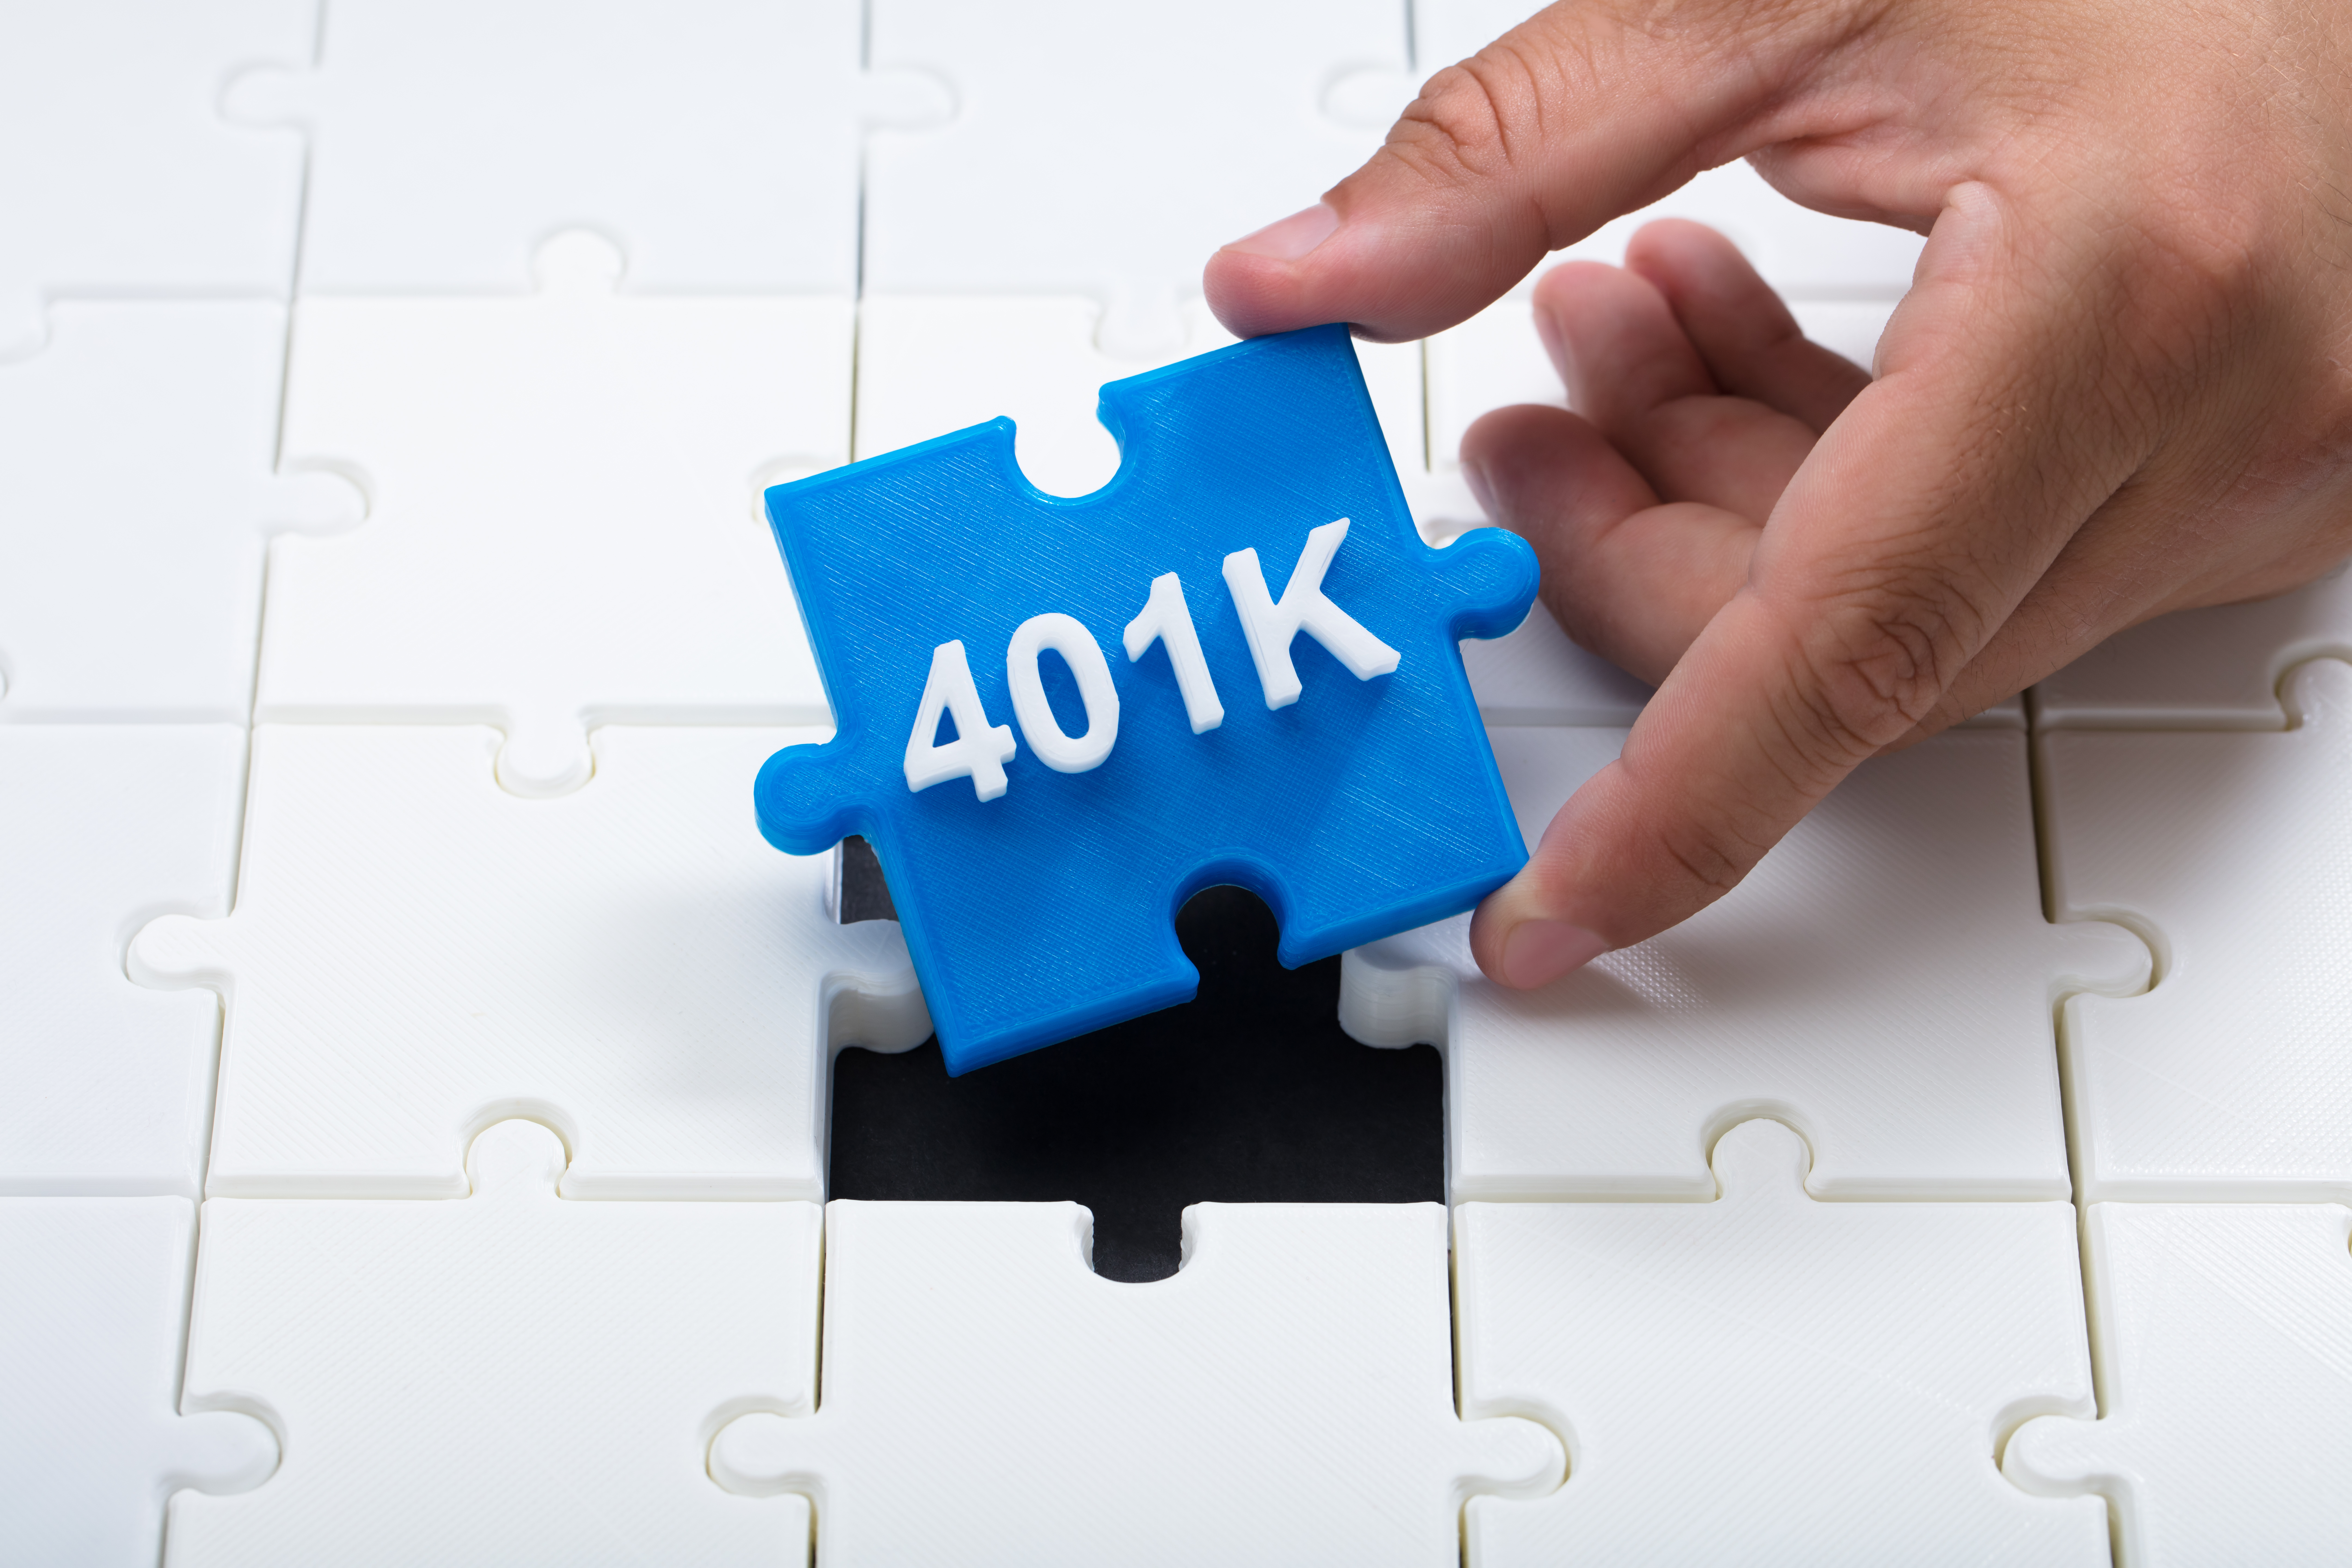 Close-up of a man's hand placing final blue 401k piece into jigsaw puzzle